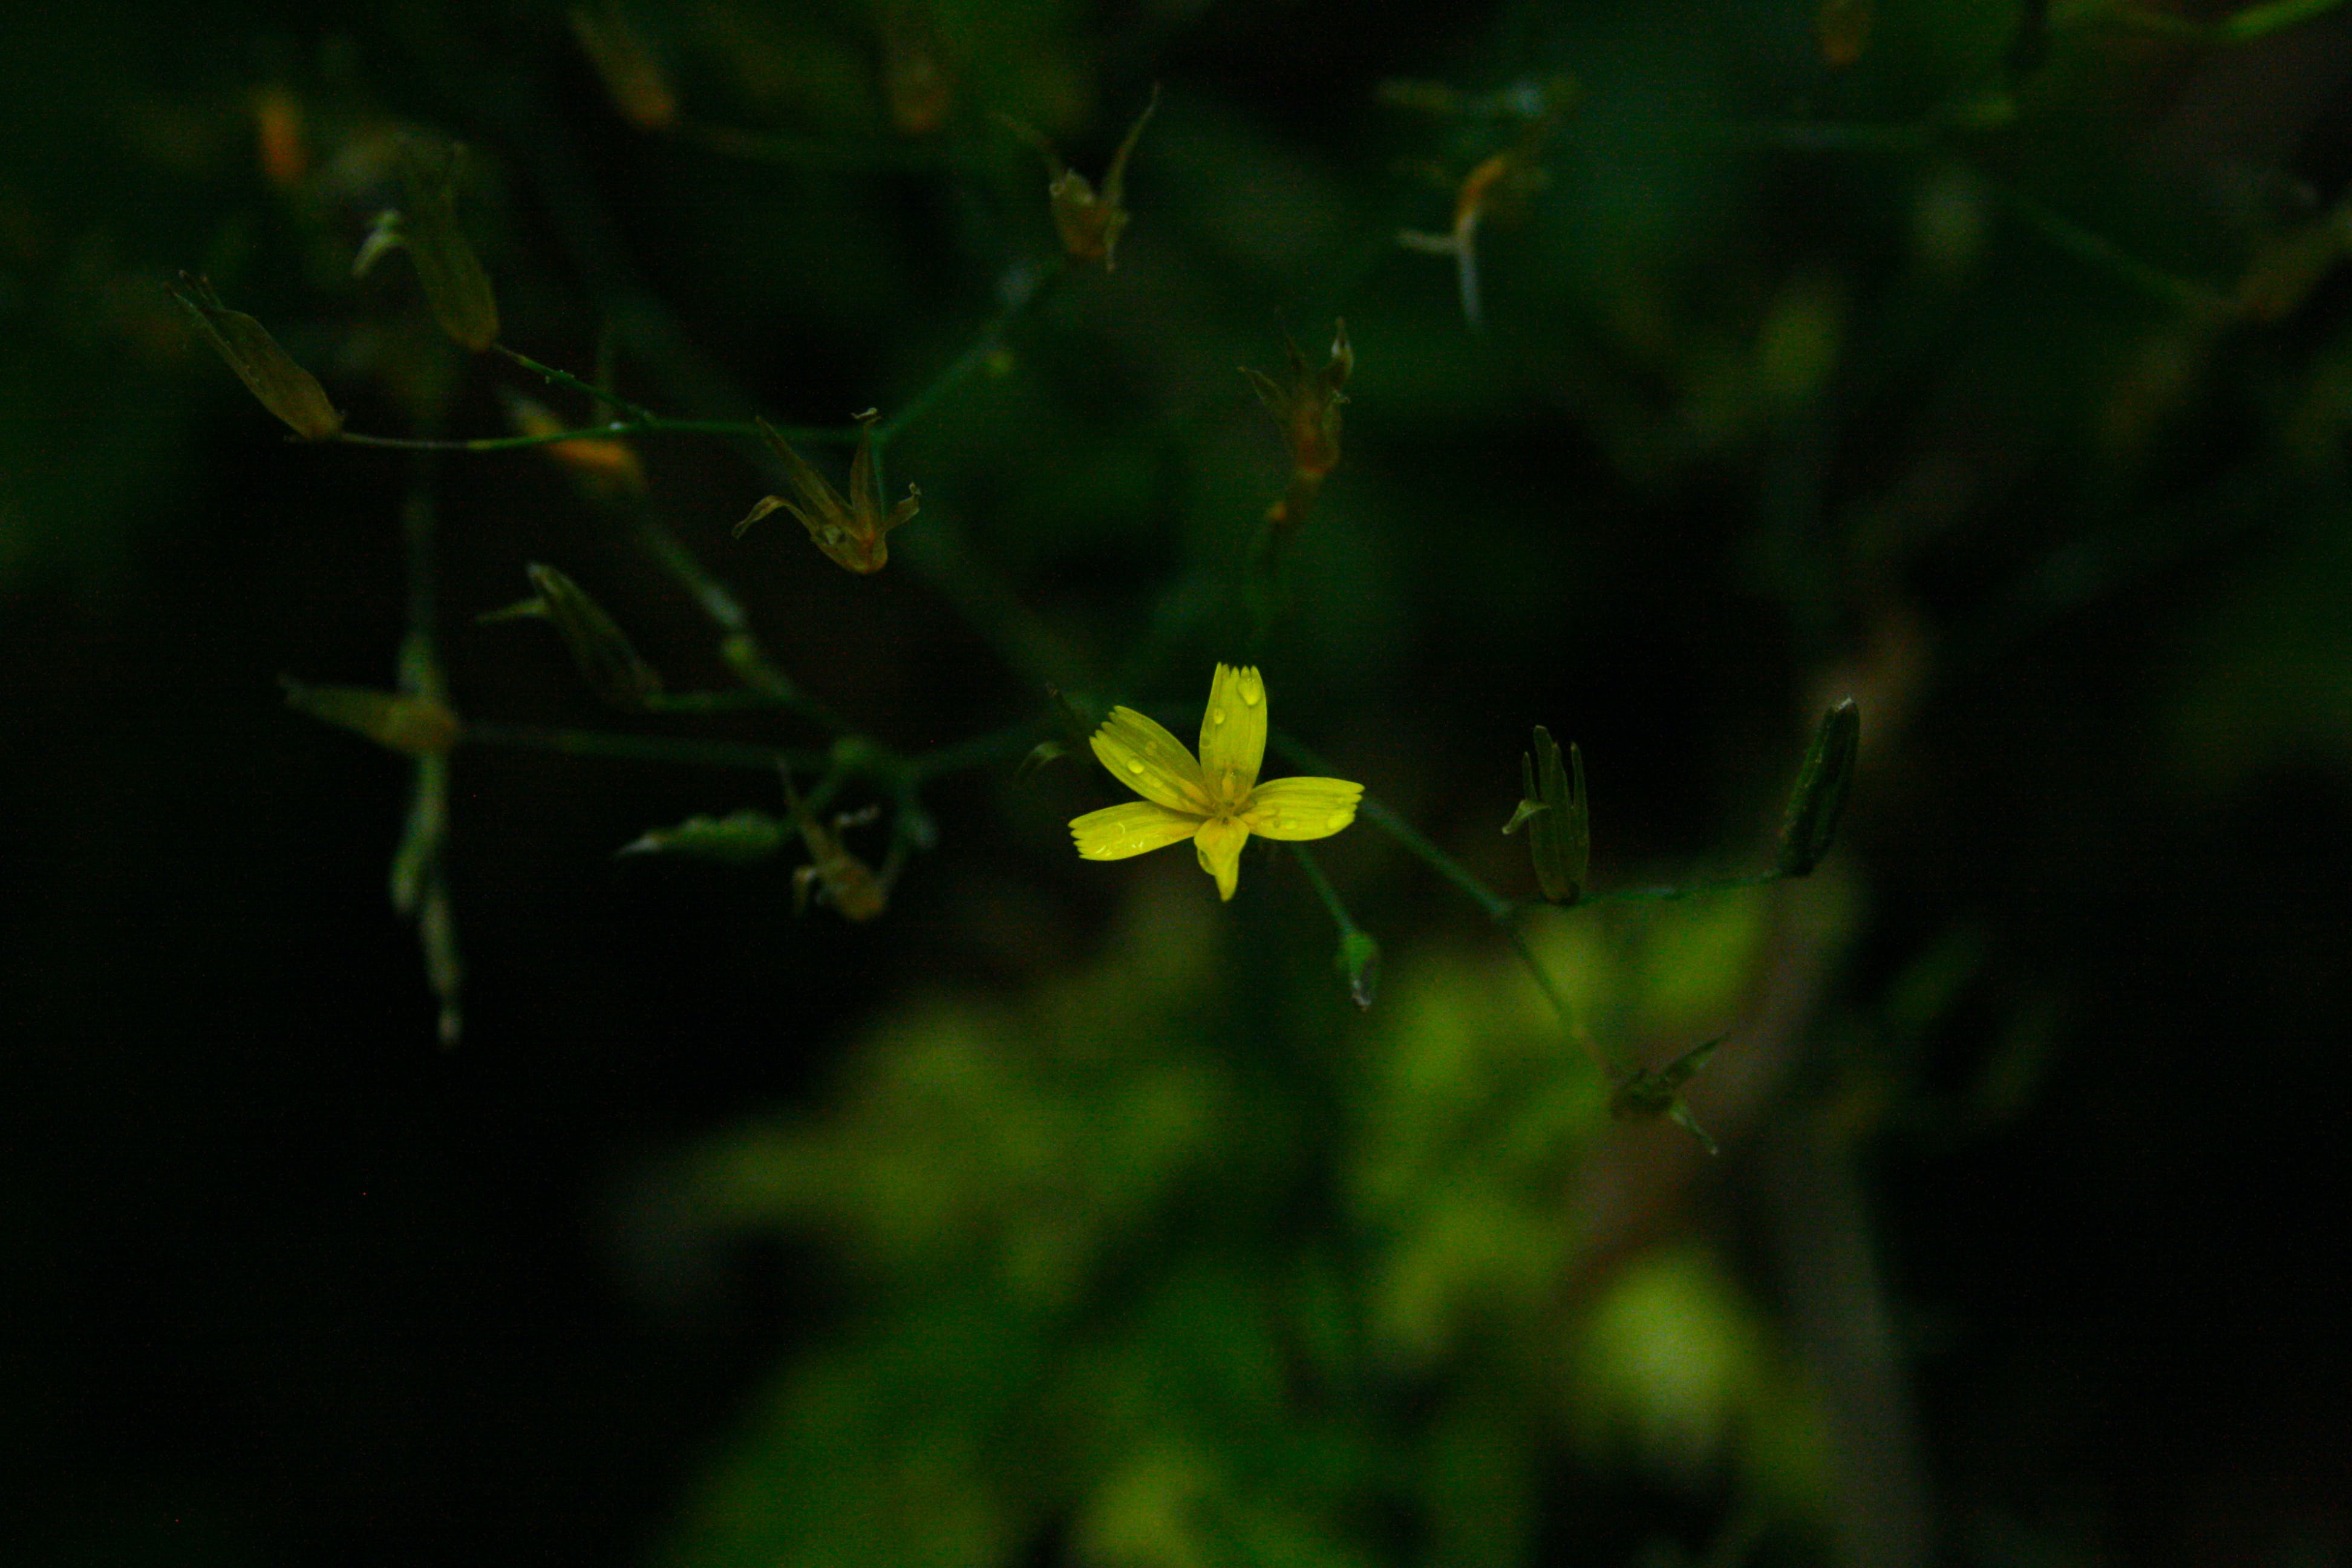 Selective Focus Photograph Of Yellow Flower